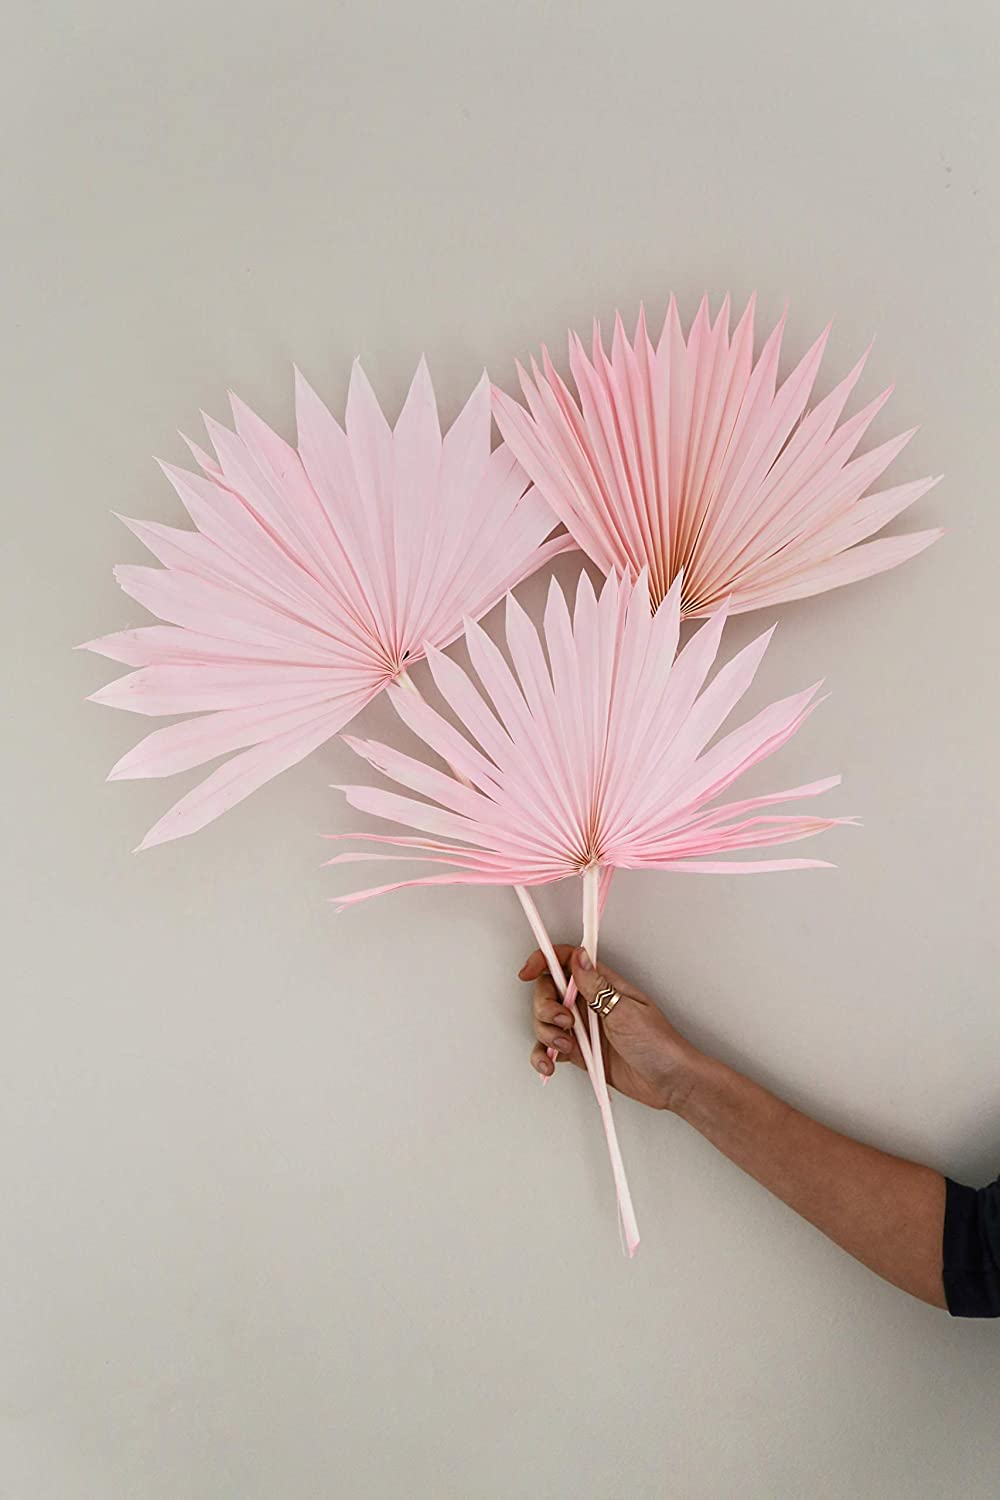 Natural Bleached or Pink Dried Palm Leaves 店舗 for 3pcs Tropi Decor 日時指定